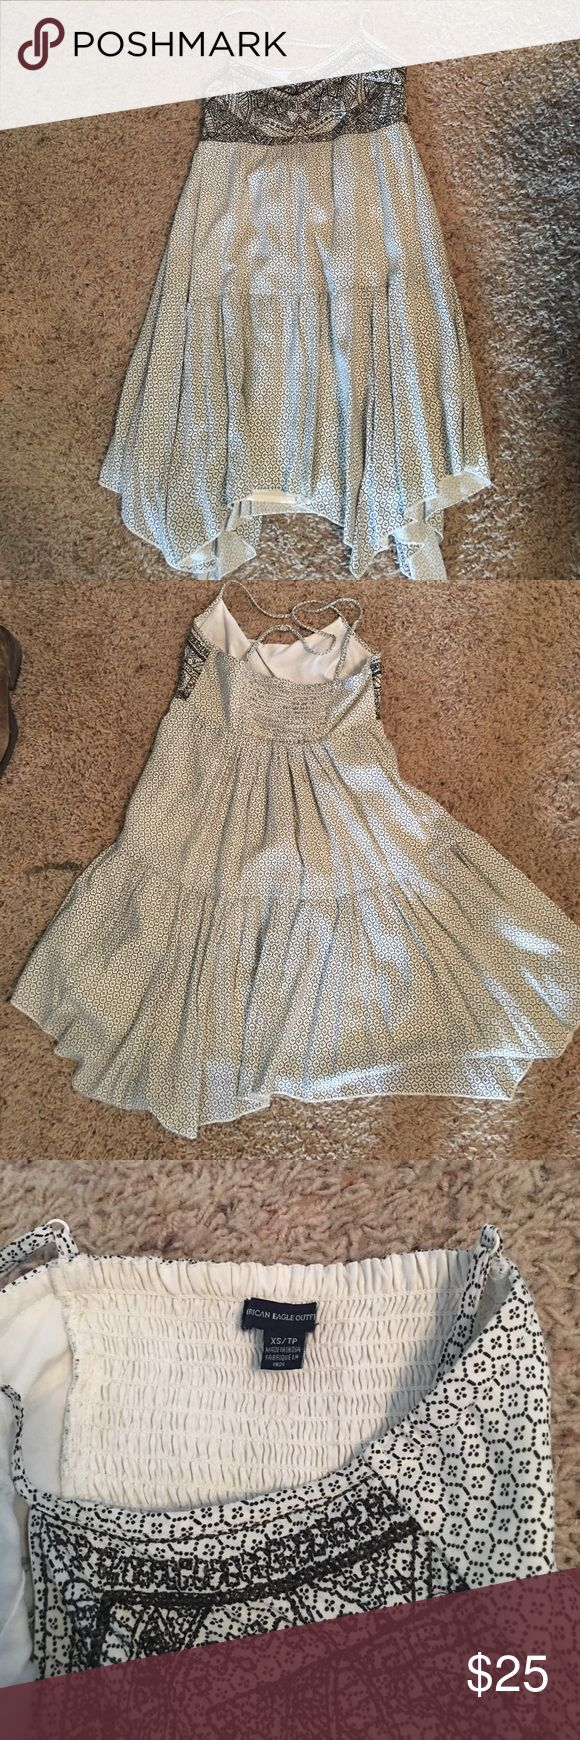 American eagle outfitters summer dress Never worn. I like it but it is to small for me. Very cute with cowboy boots. American Eagle Outfitters Dresses